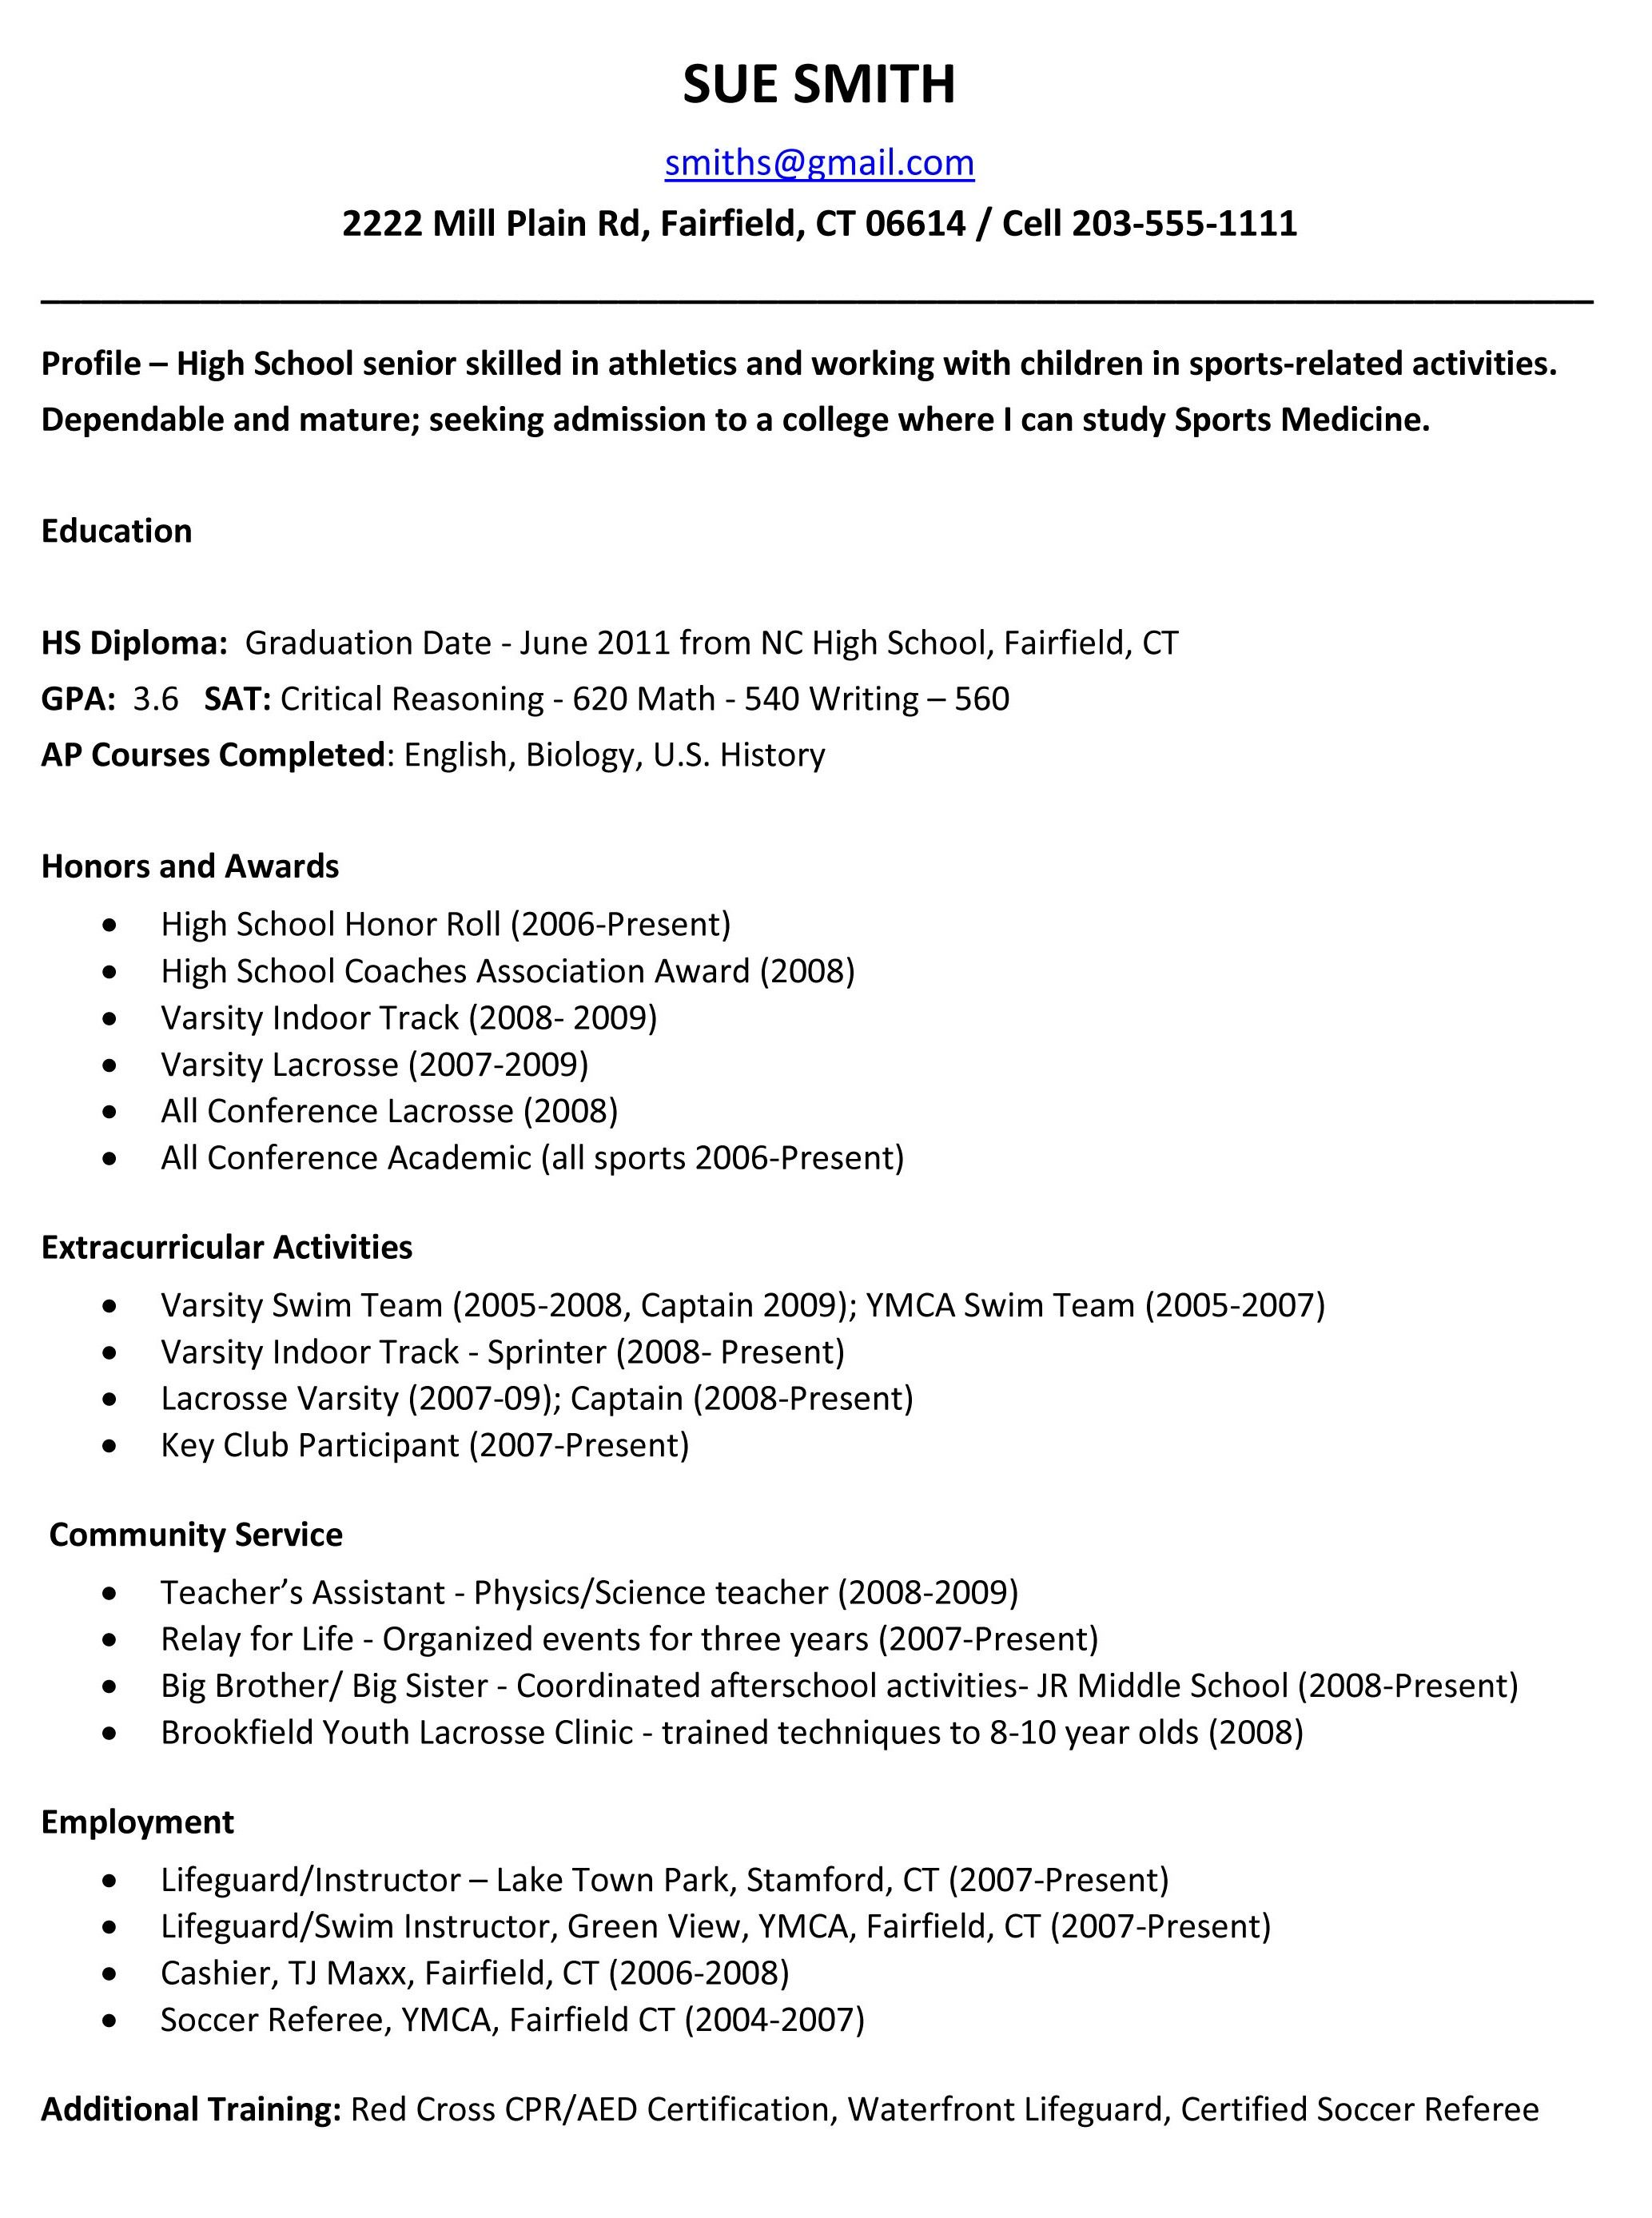 college application resume outline example resume for high school students for college 17192 | ca744b64e471d800830ad3a58b1c177e